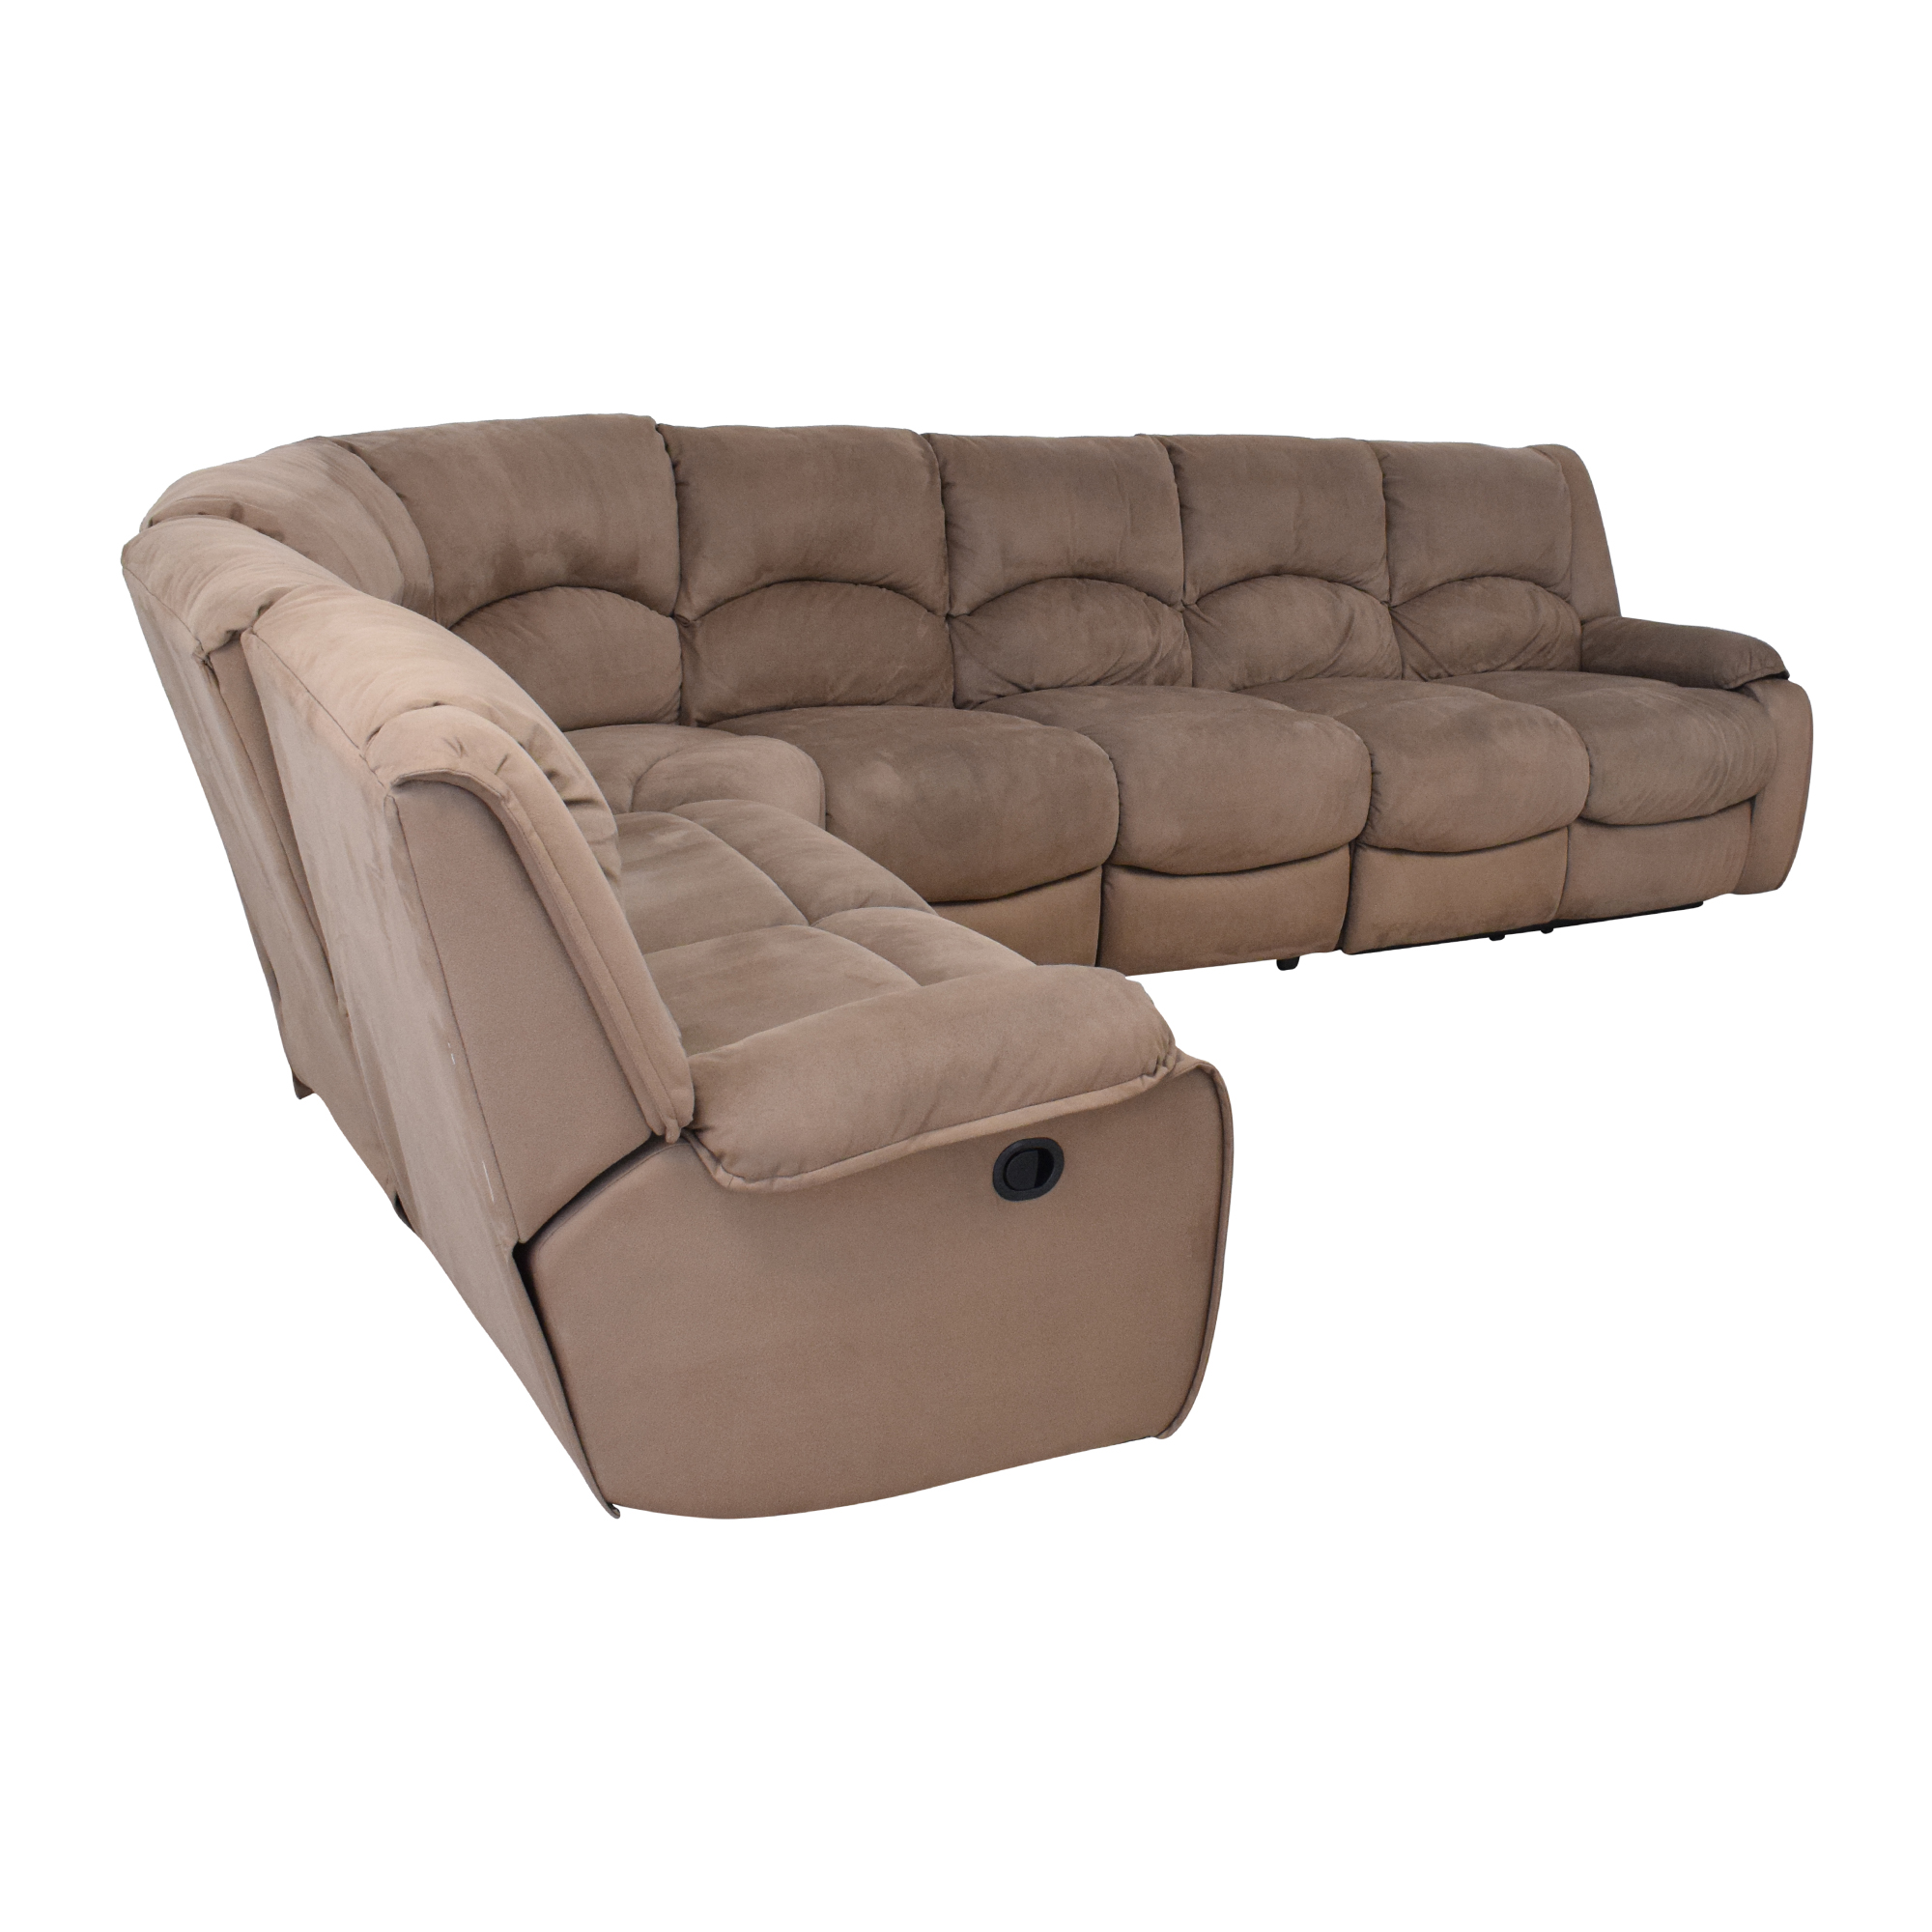 Raymour & Flanigan Raymour & Flanigan Sectional Sofa with Recliners price